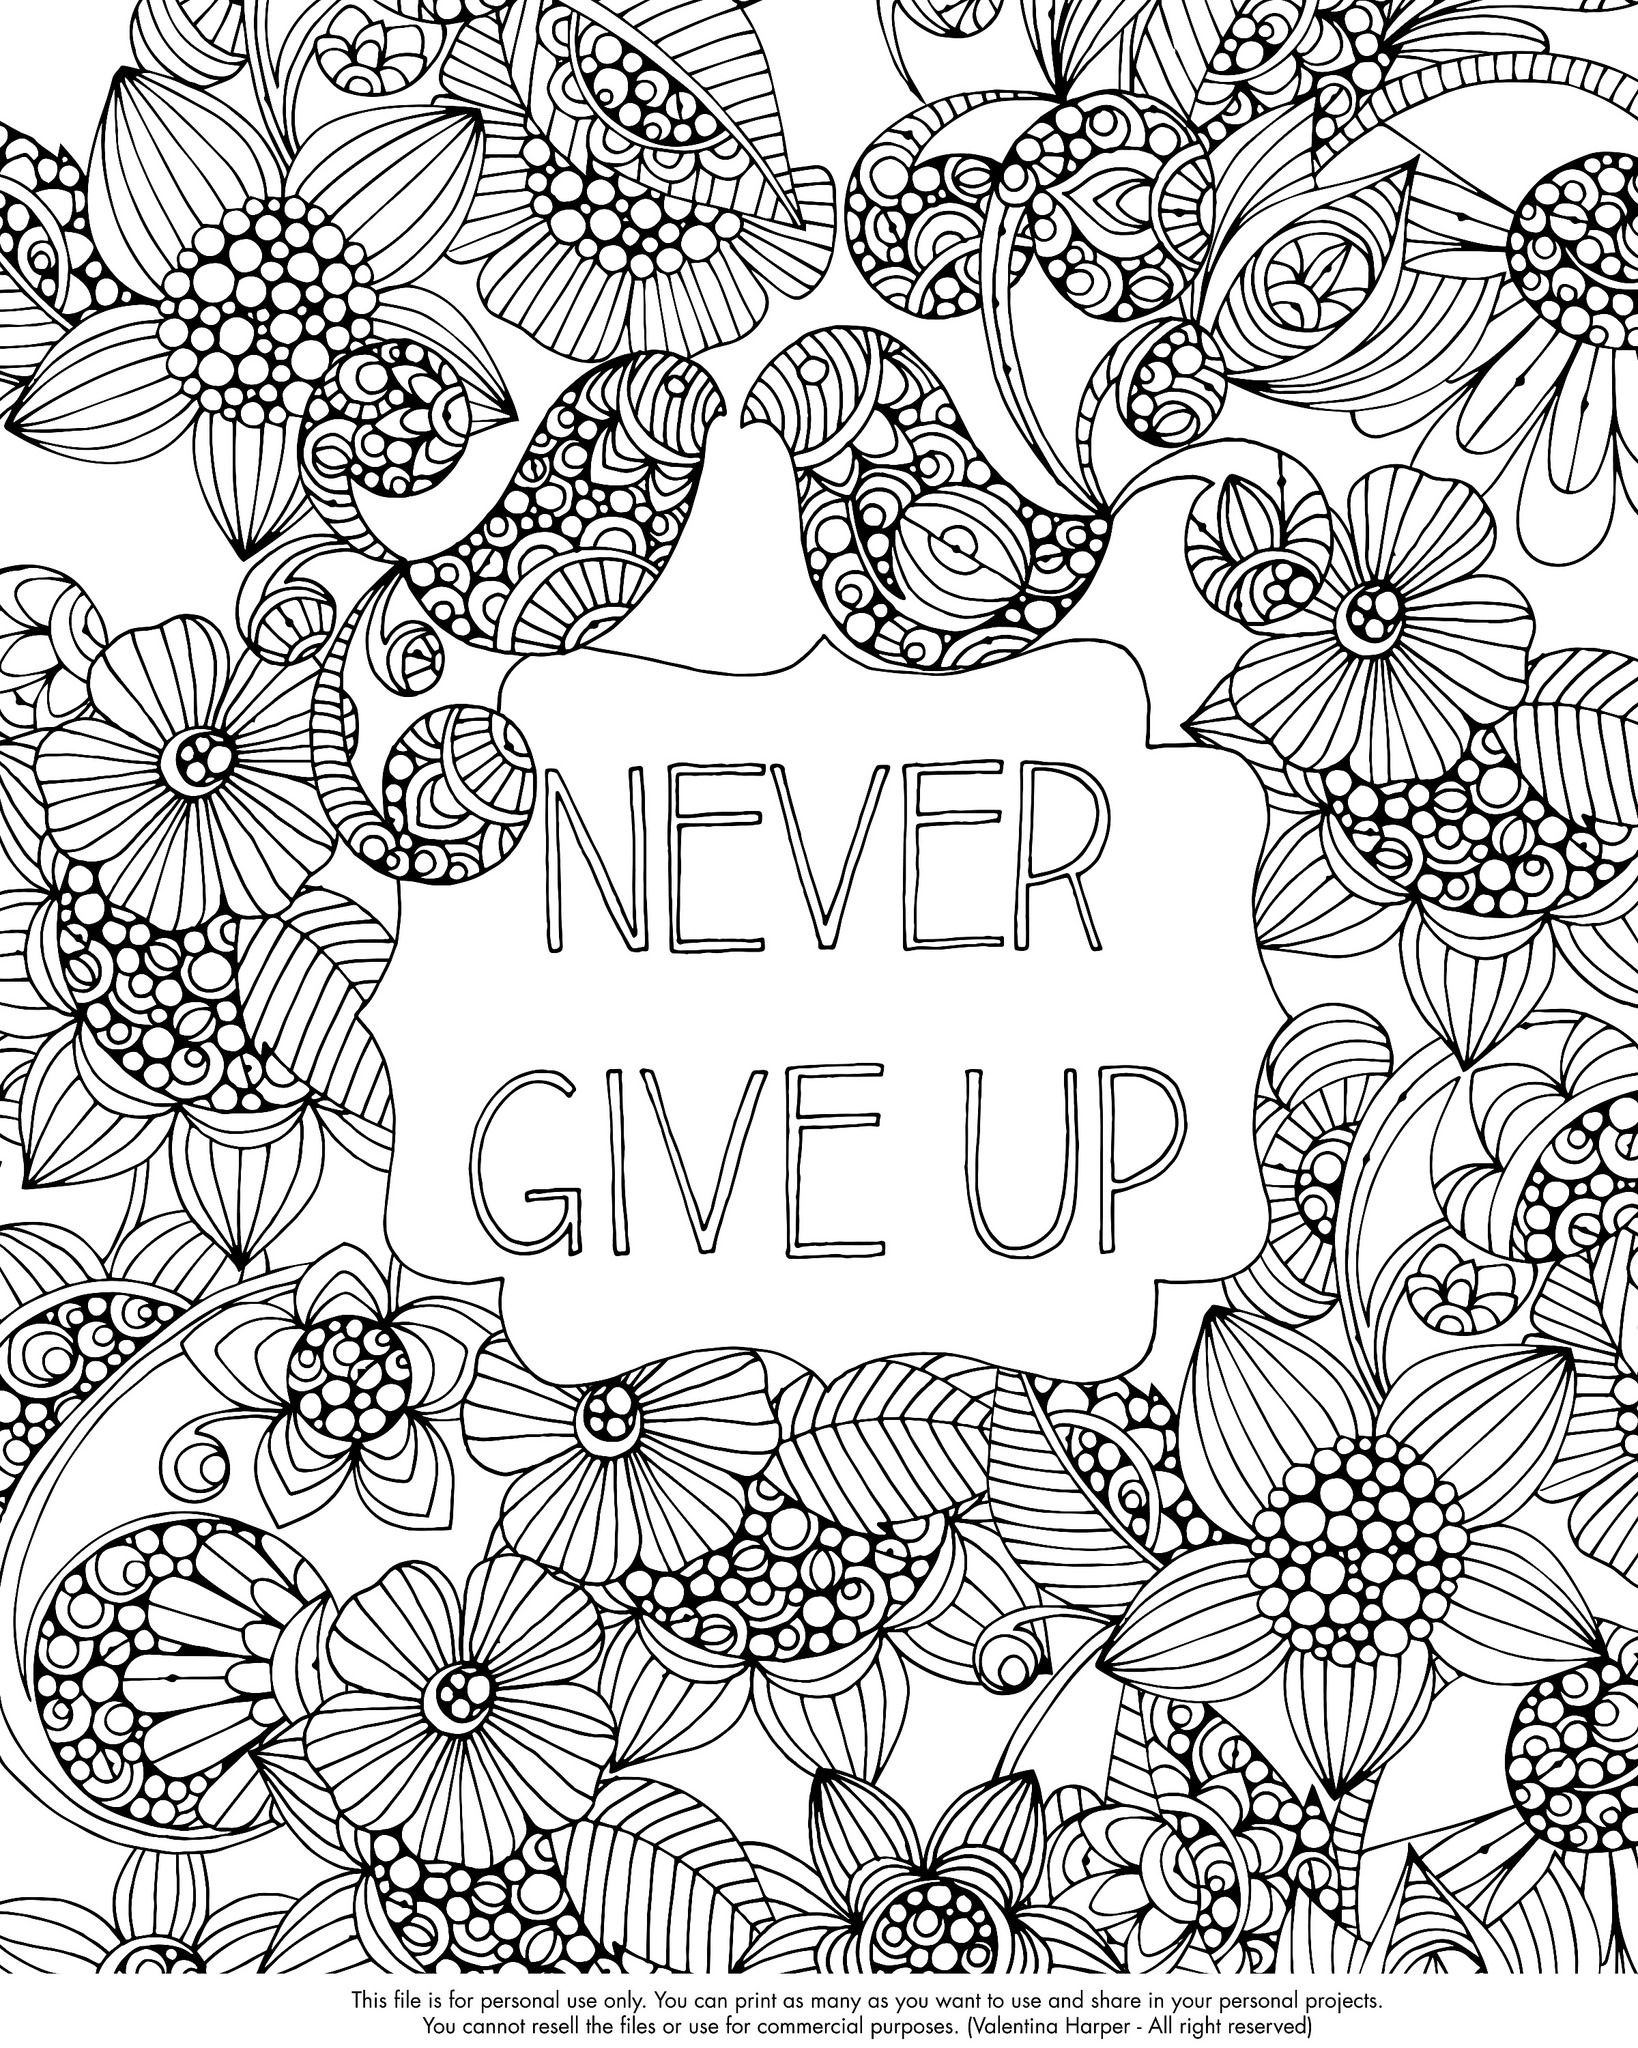 Never Give up Free coloring pages, Free adult coloring